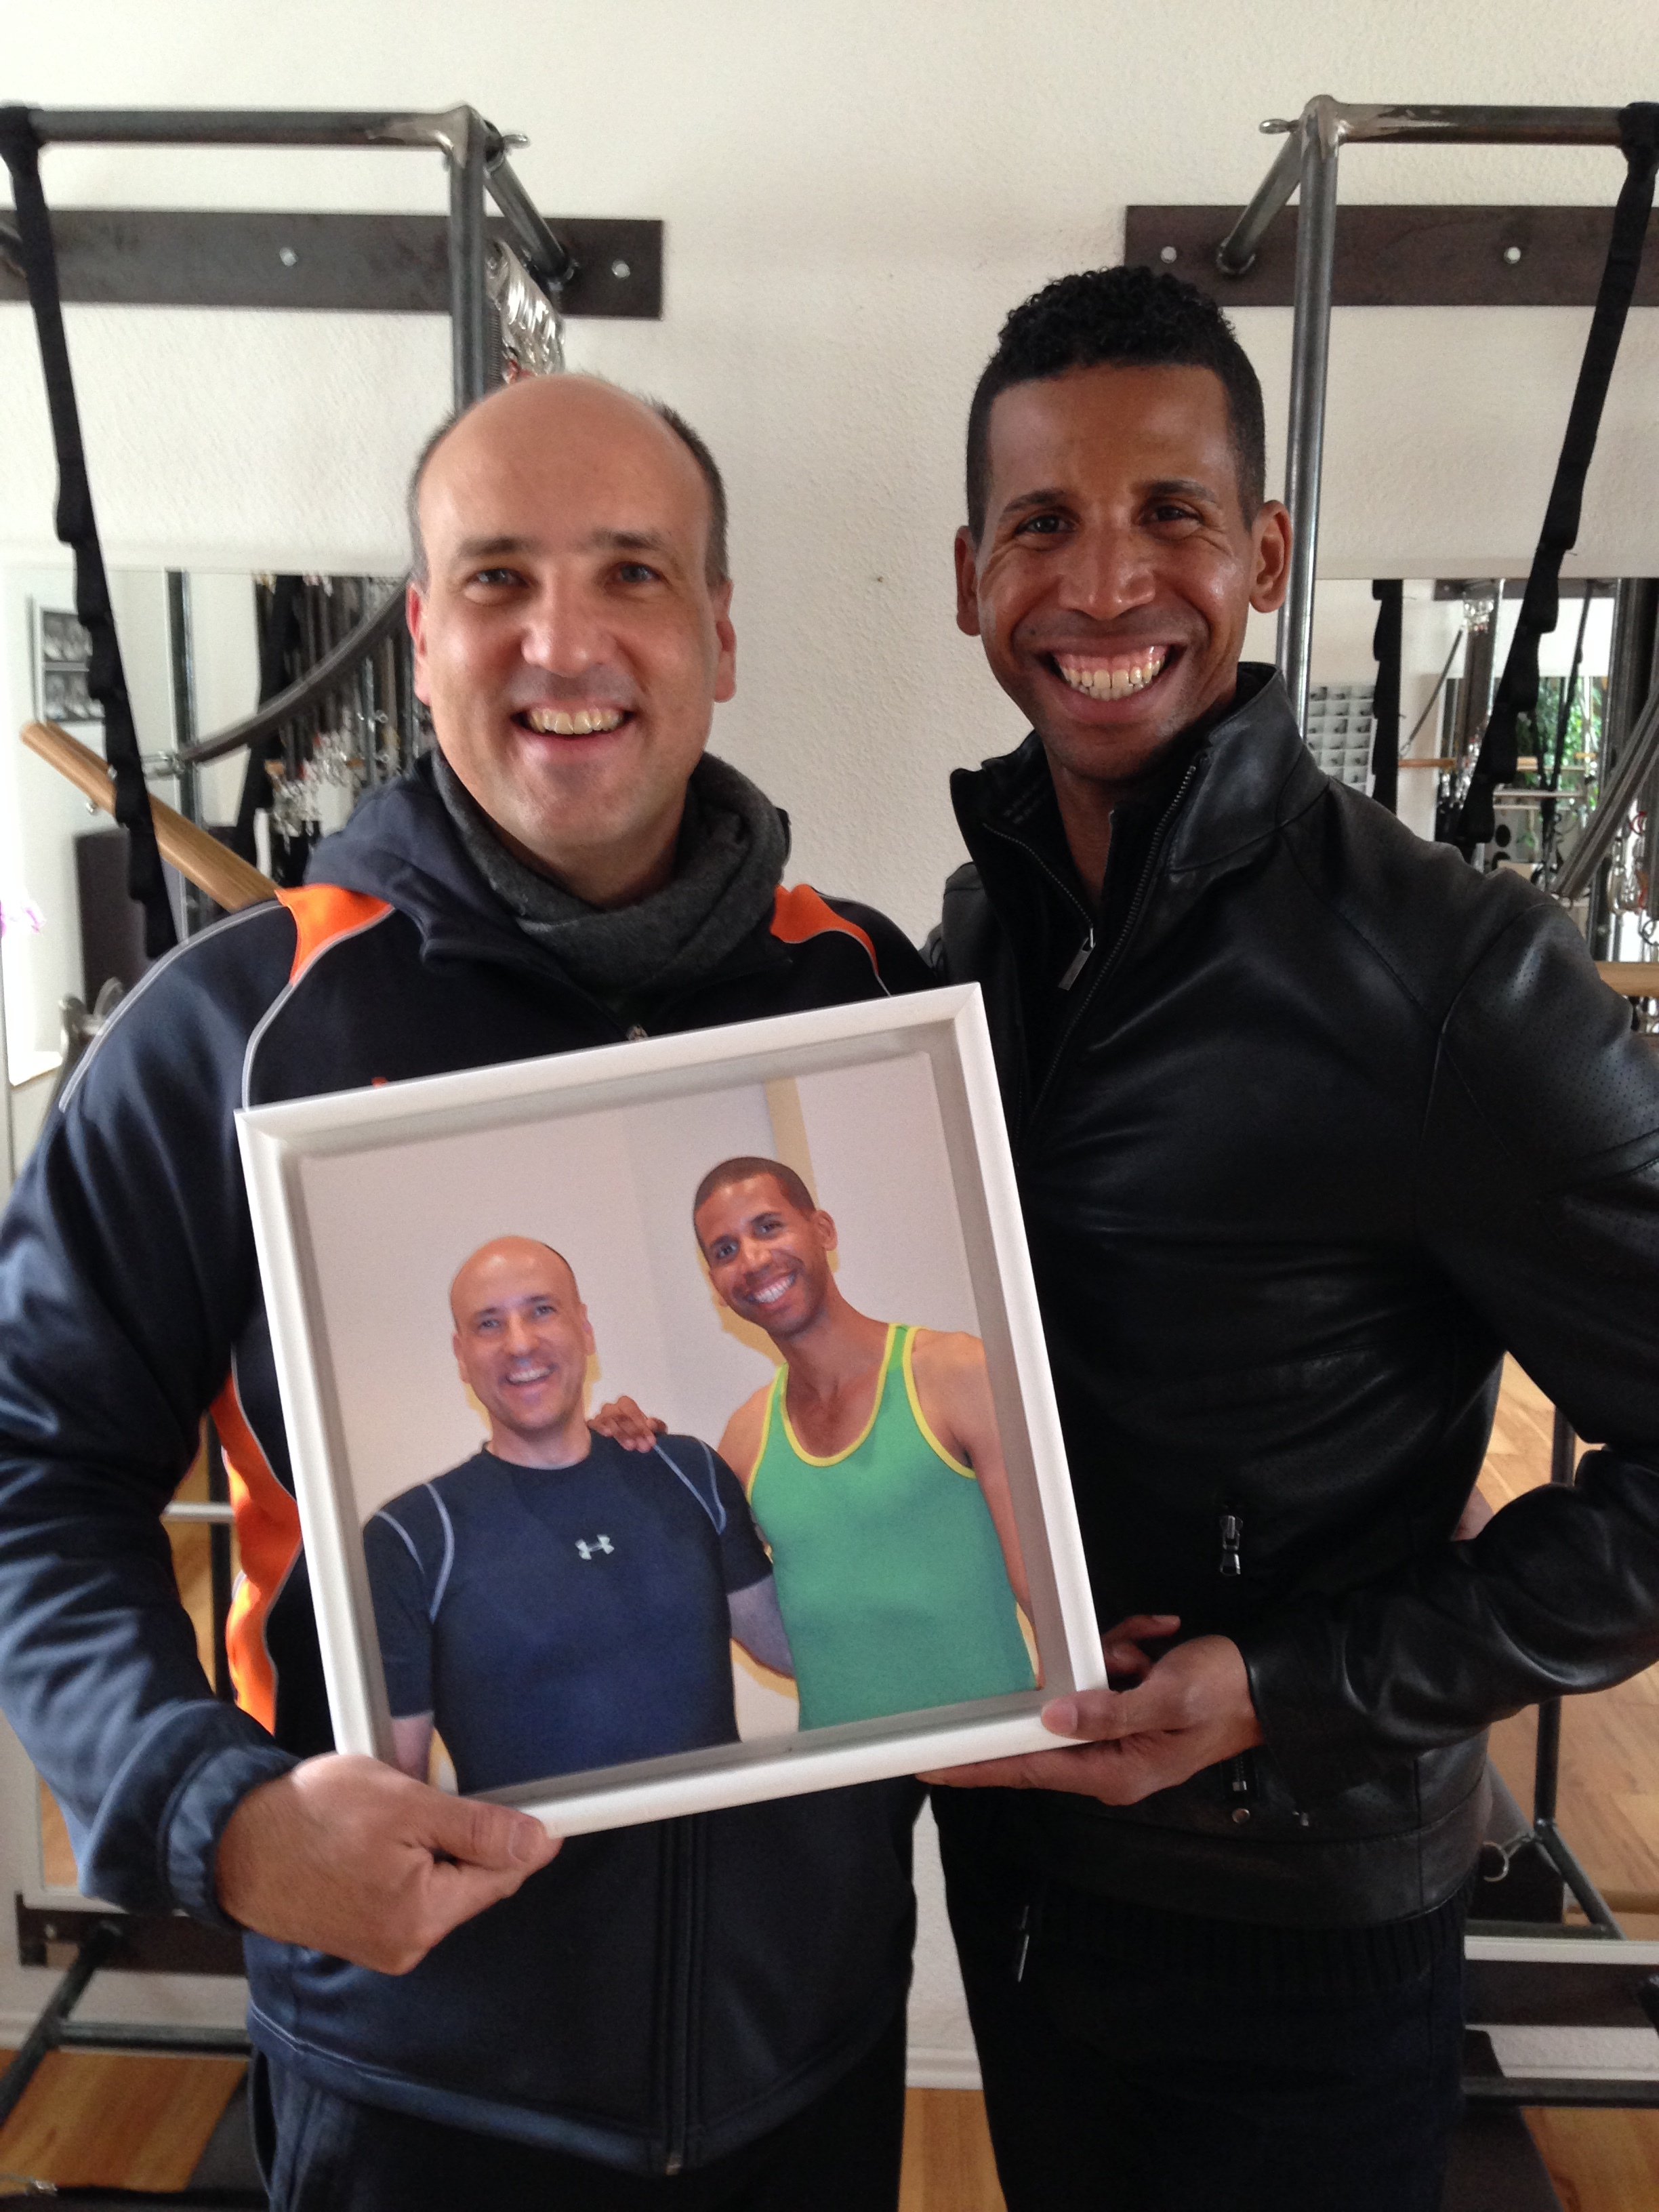 Brett Howard und Reiner Grootenhuis im Mai 2015 im pilates-powers Studio